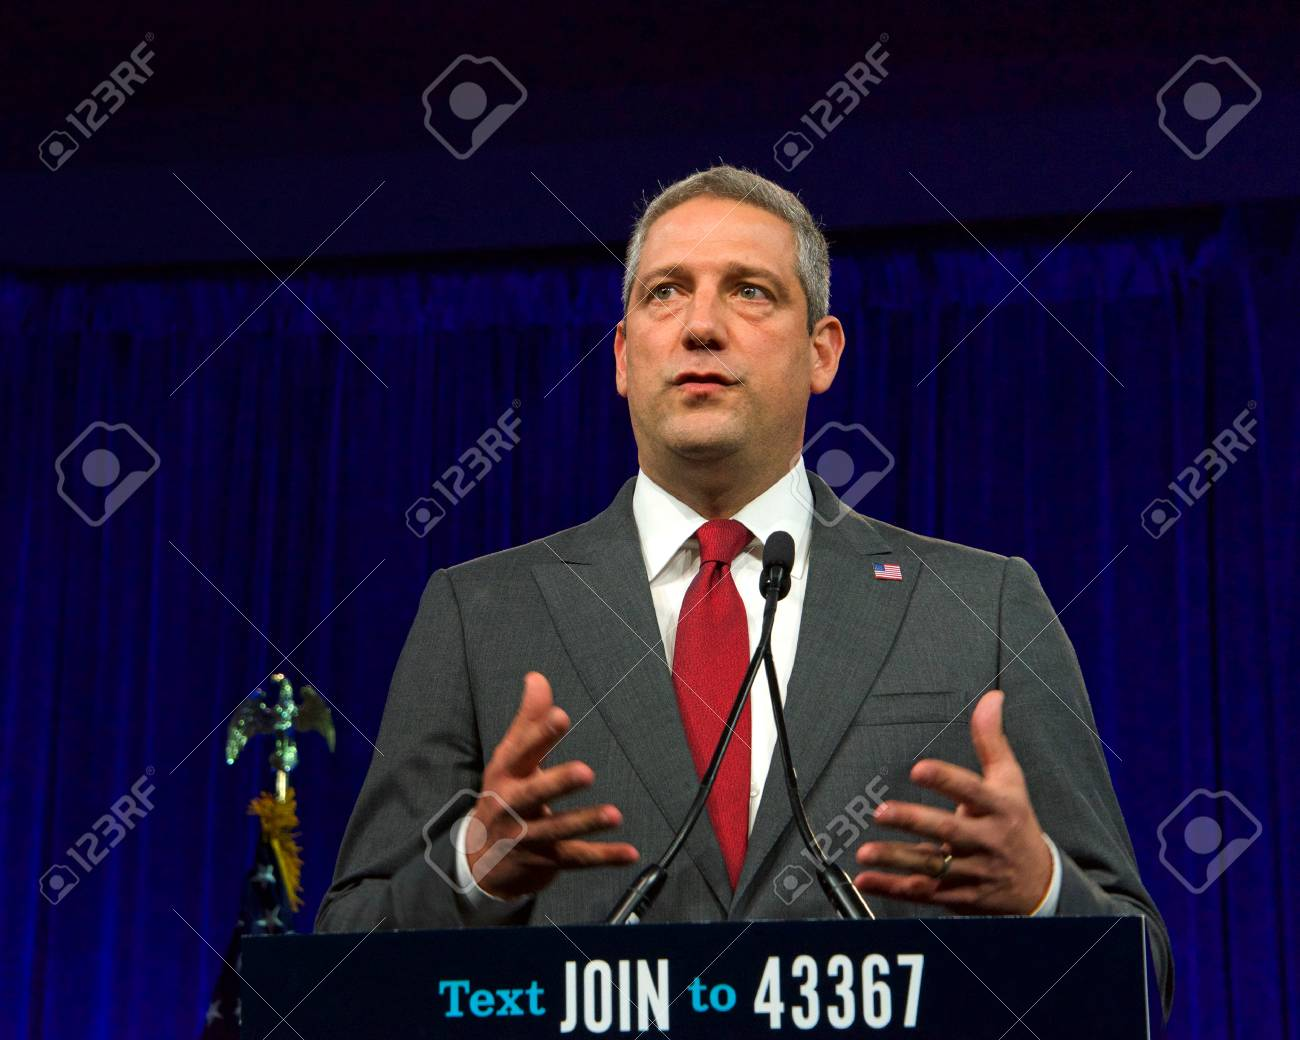 San Francisco, CA - August 23, 2019: Presidential candidate Tim